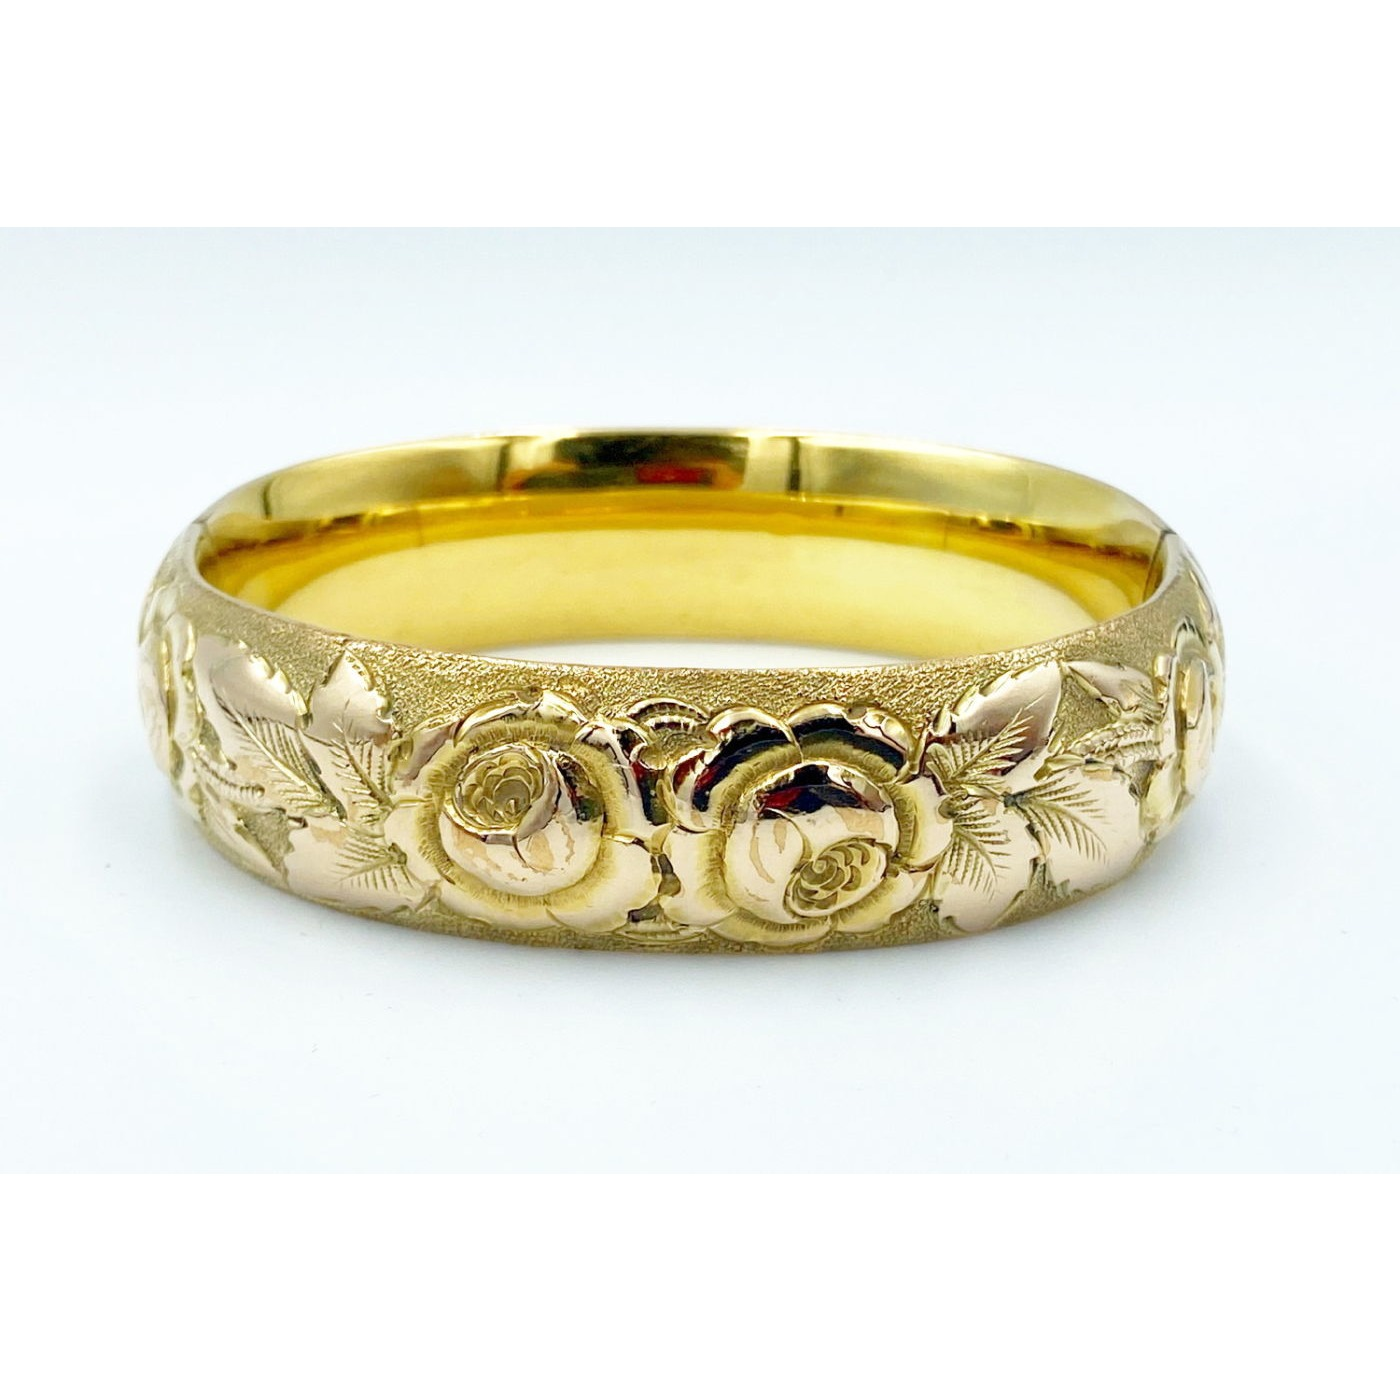 Excellent Deeply Engraved Engagement Bangle w/ Roses